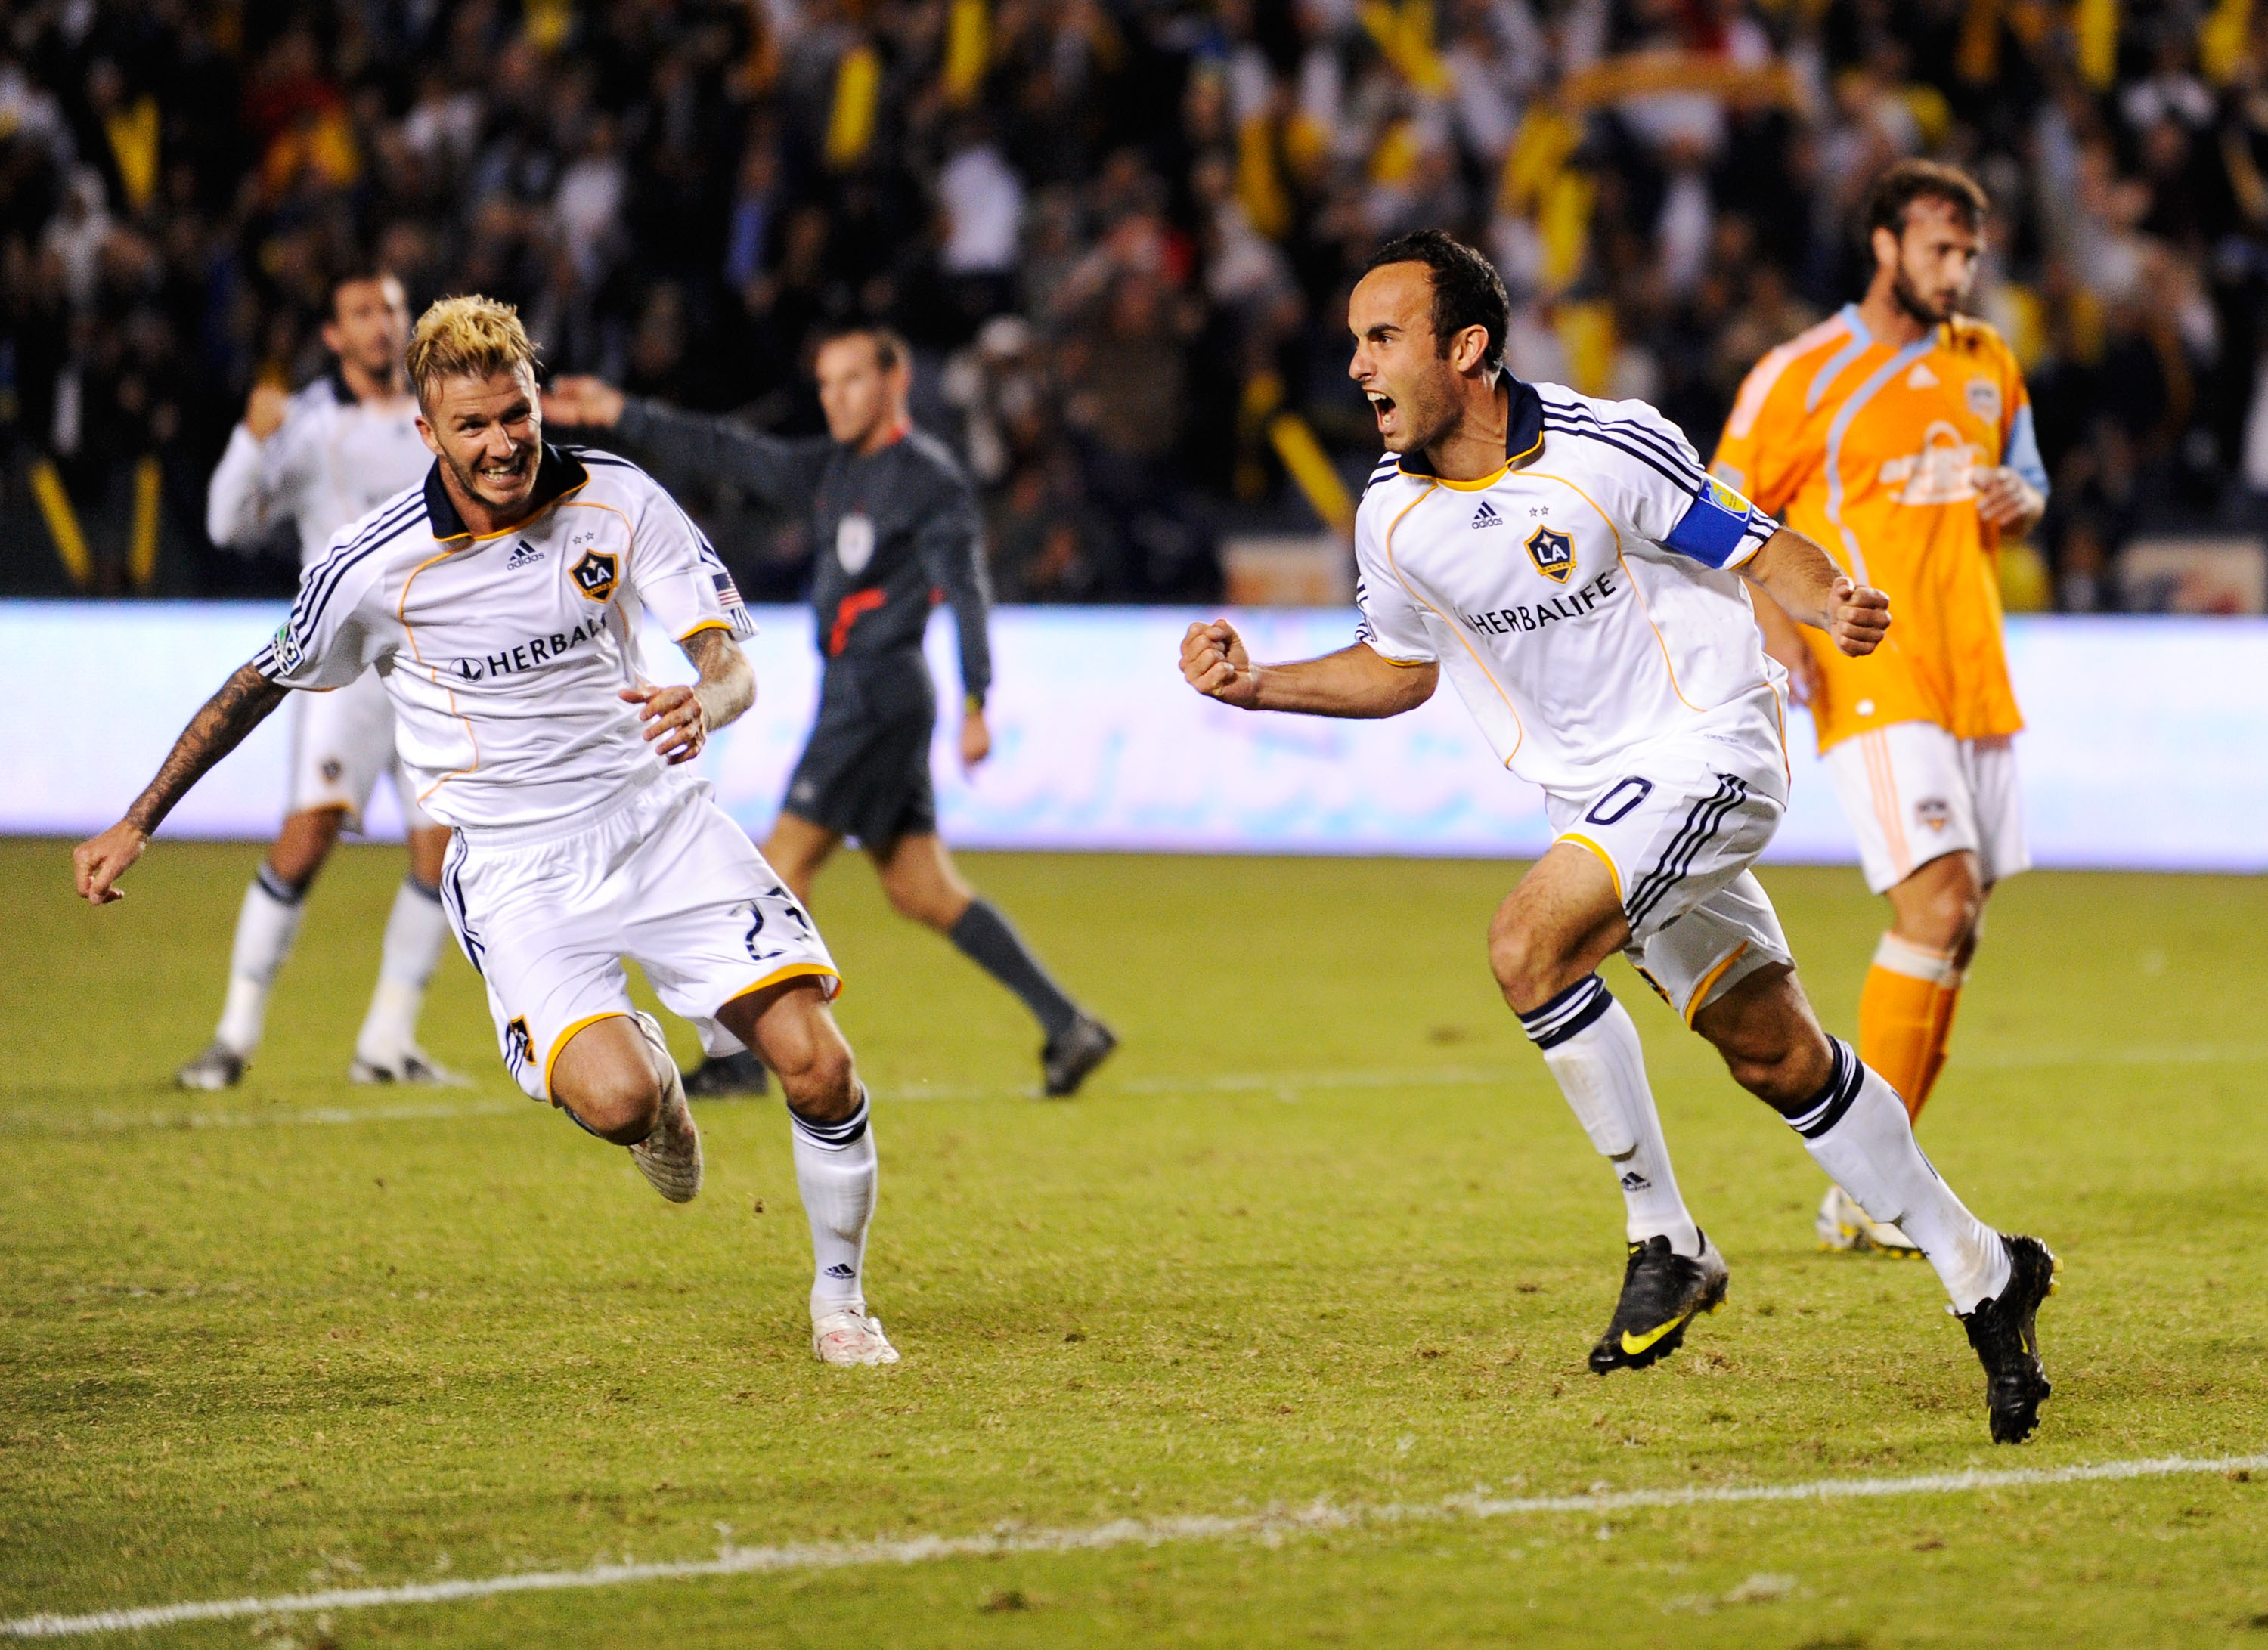 CARSON, CA - NOVEMBER 13:  David Beckham #23  and Landon Donovan #10 of the Los Angeles Galaxy celebrate after Donovan's goal on a penalty kick against  Houston Dynamo during the MLS Western Conference Championship soccer match at The Home Depot Center on